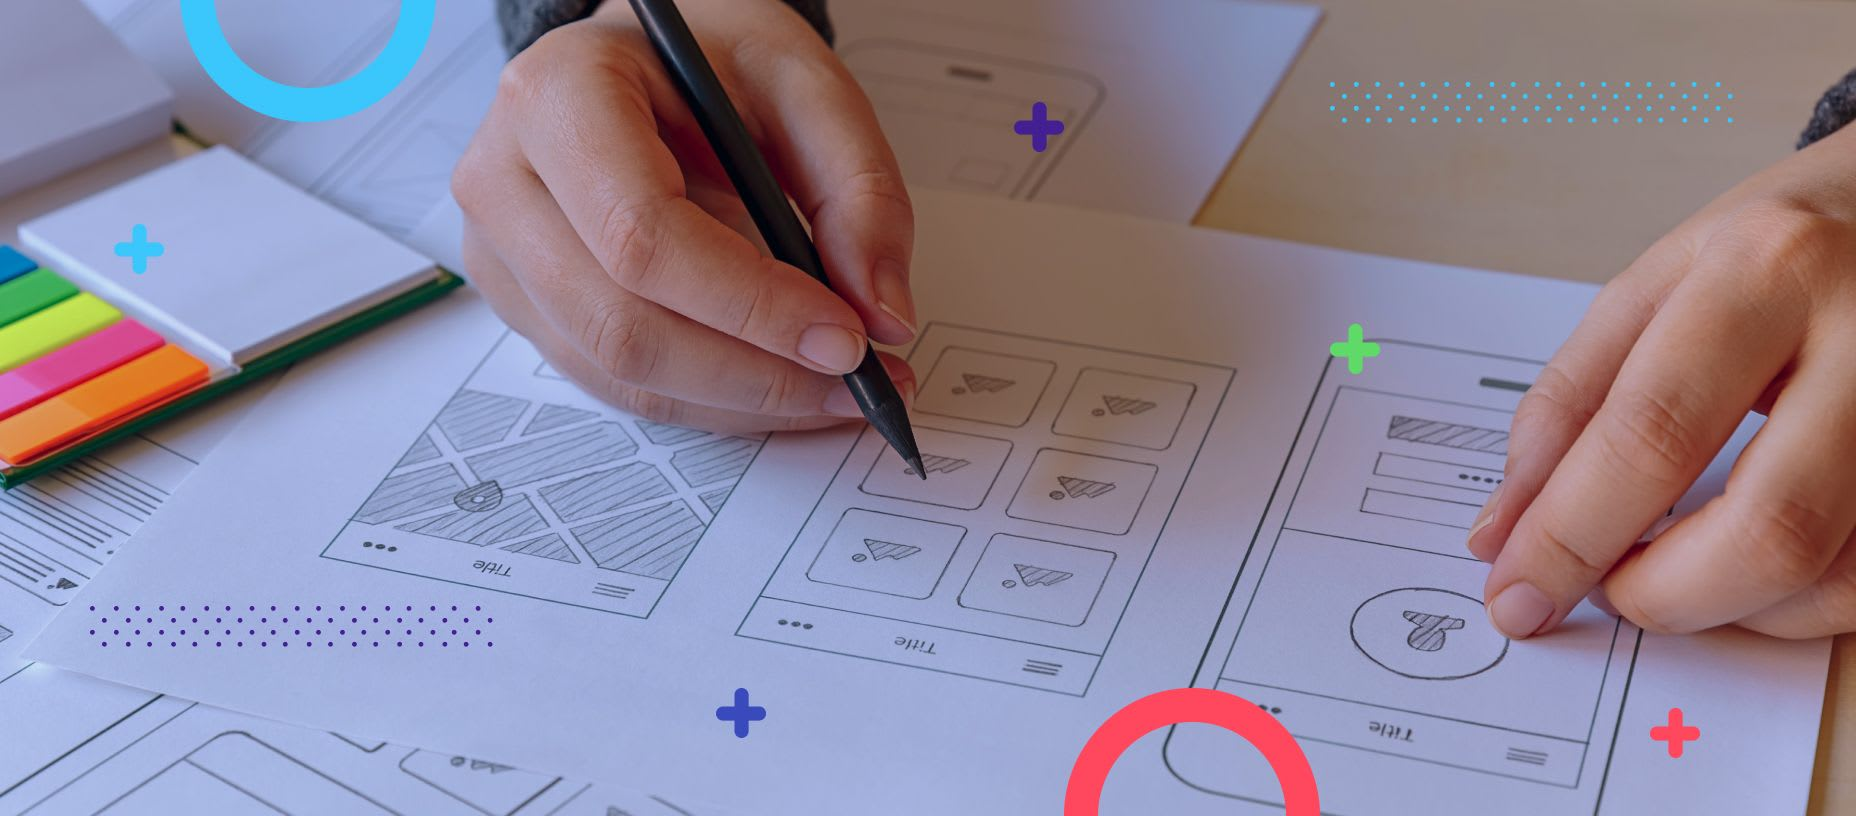 How To Improve Your UX & UI Skills With Wireframing